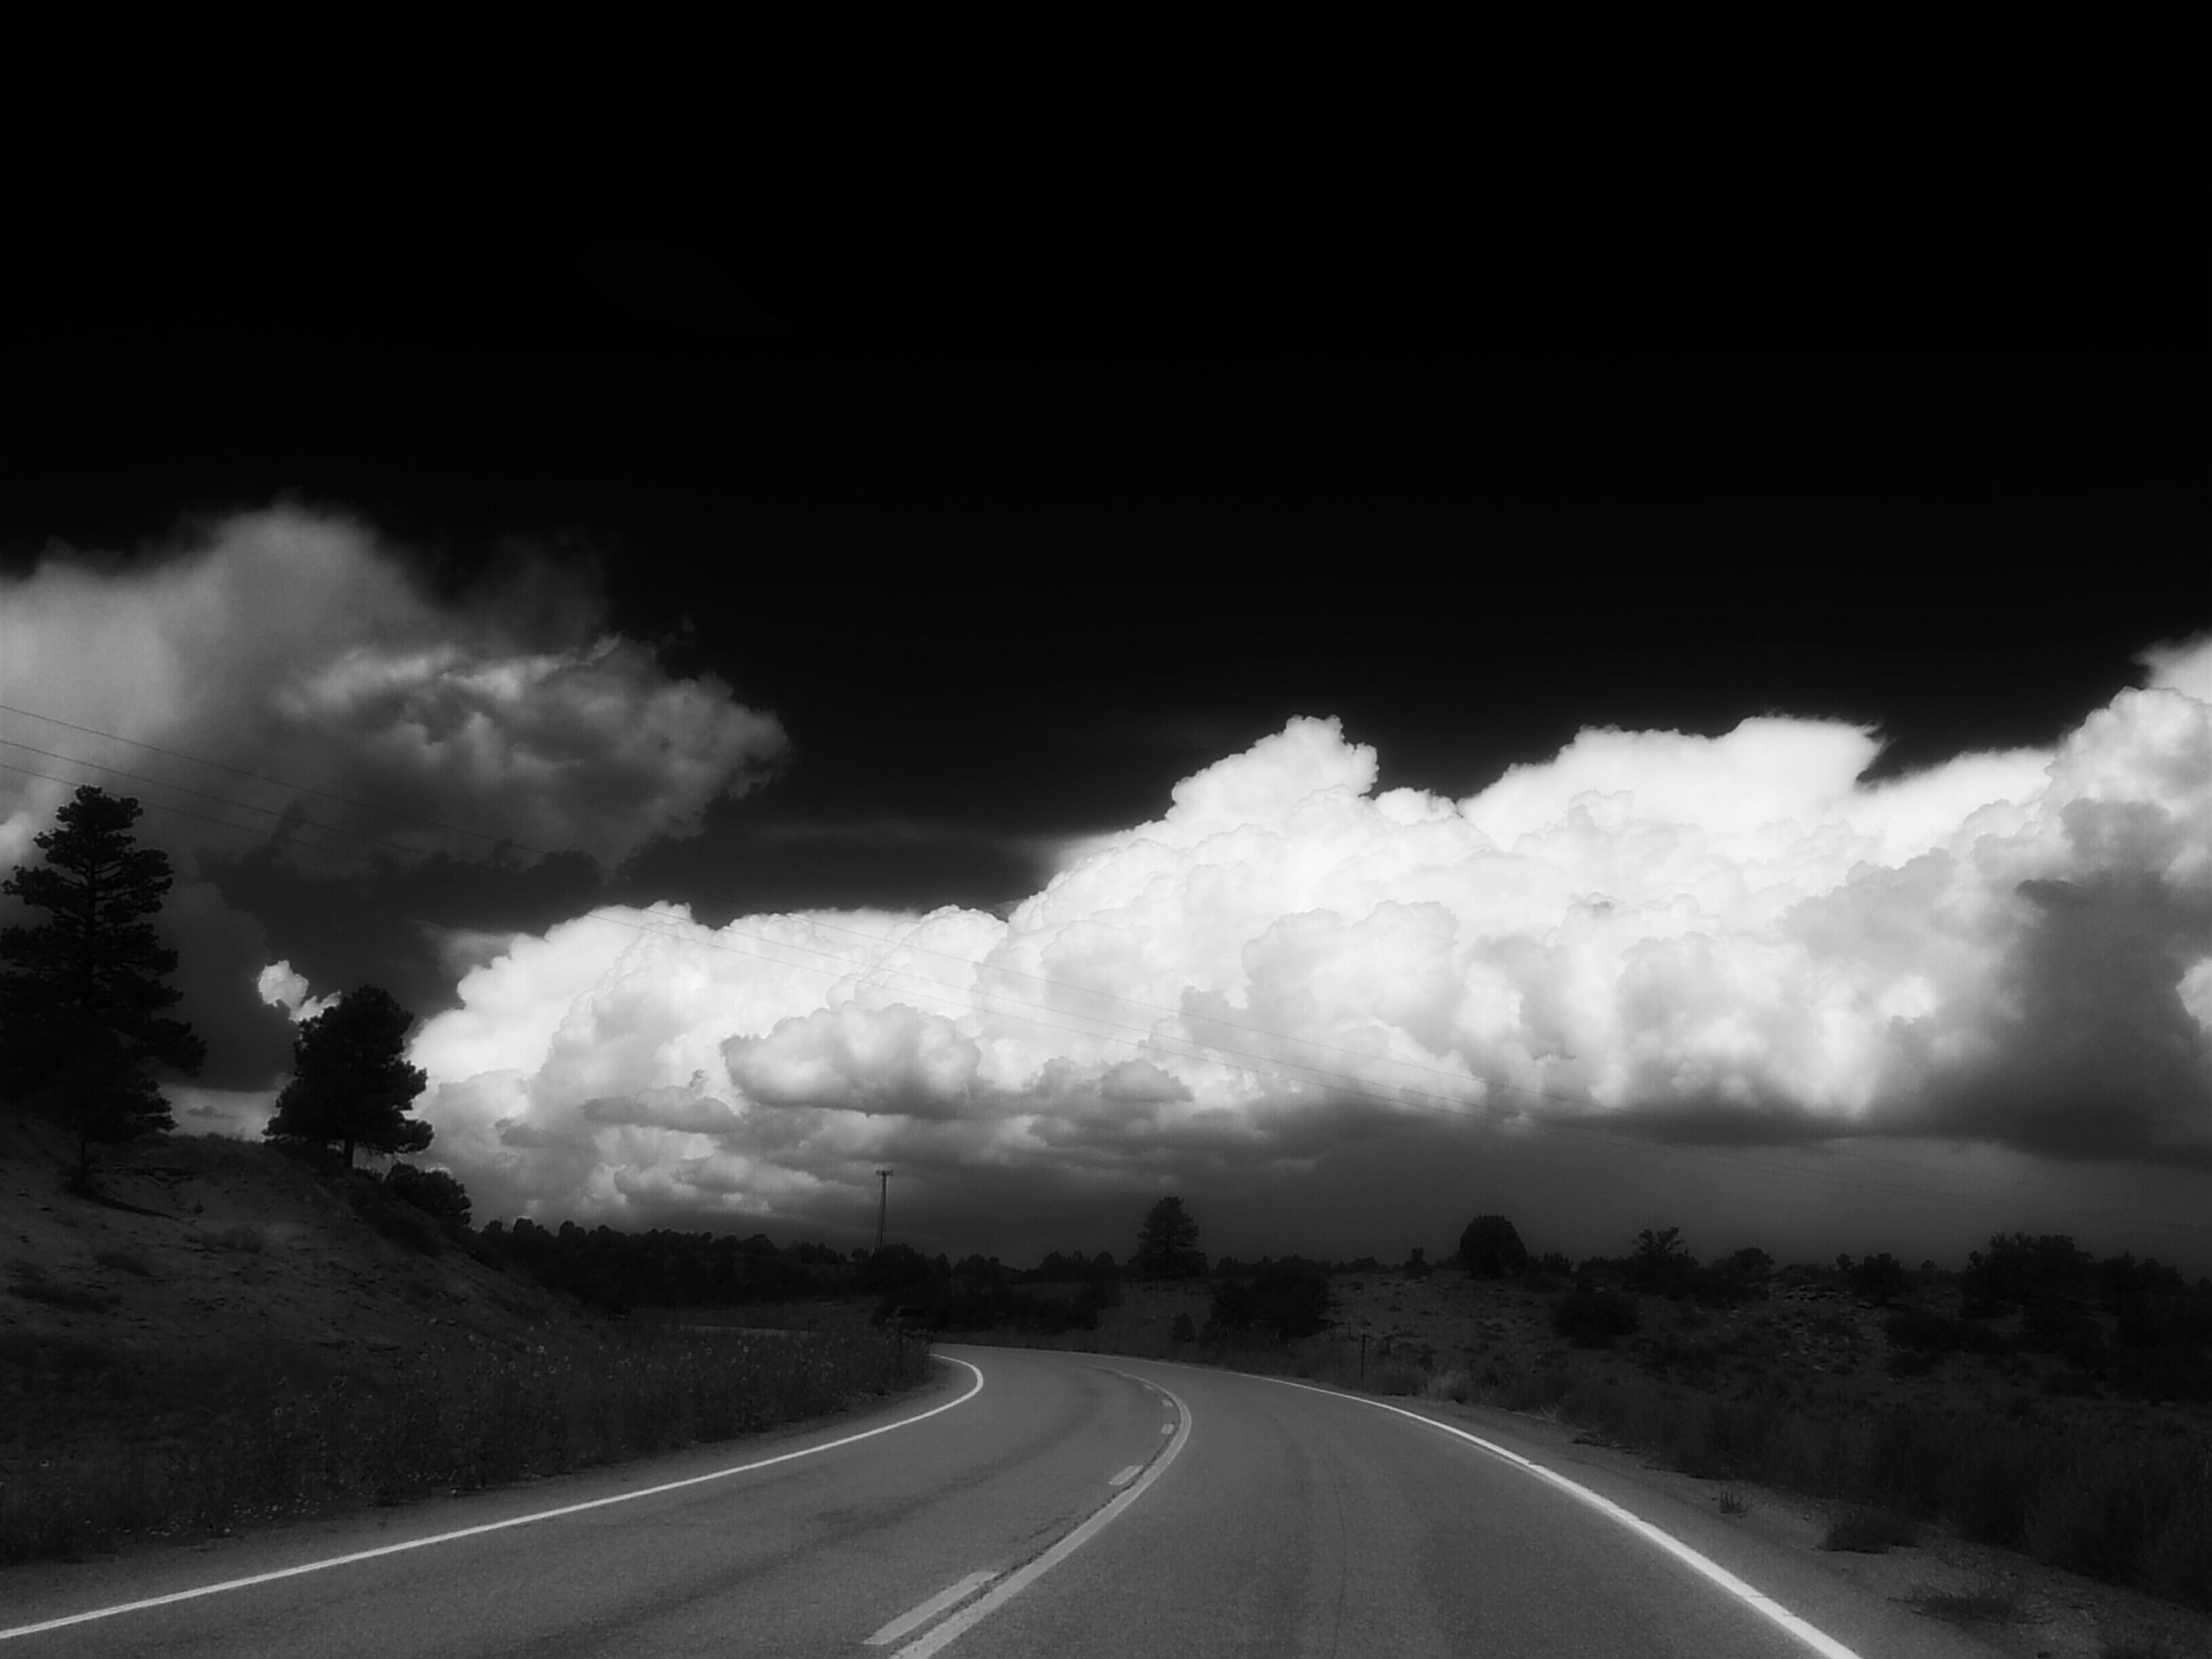 the way forward, road, diminishing perspective, transportation, vanishing point, sky, road marking, empty road, country road, landscape, cloud - sky, nature, cloudy, street, long, tranquility, tranquil scene, empty, outdoors, no people